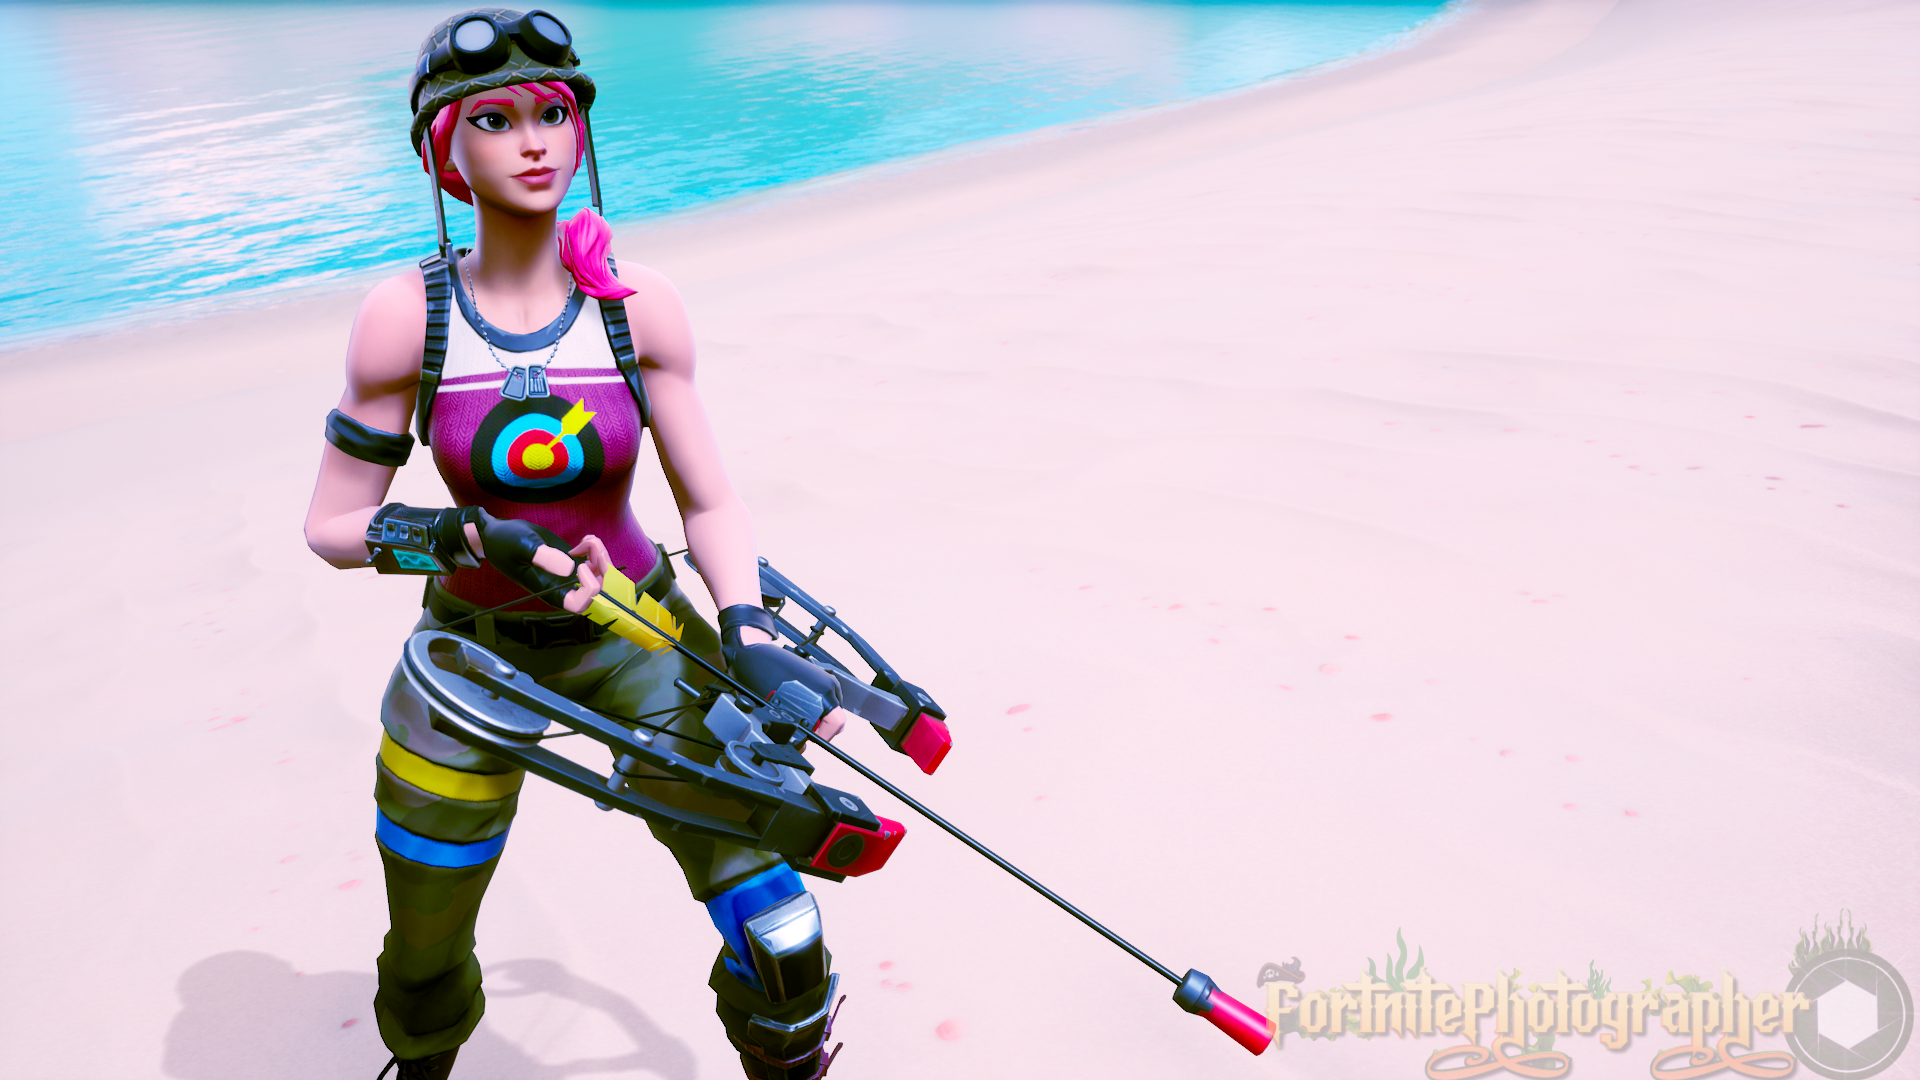 Practice Leads To Perfection Did You Guys Like The New Bow 155 Followers Already Thank You Guys Bull Fortnite Gaming Wallpapers Best Gaming Wallpapers